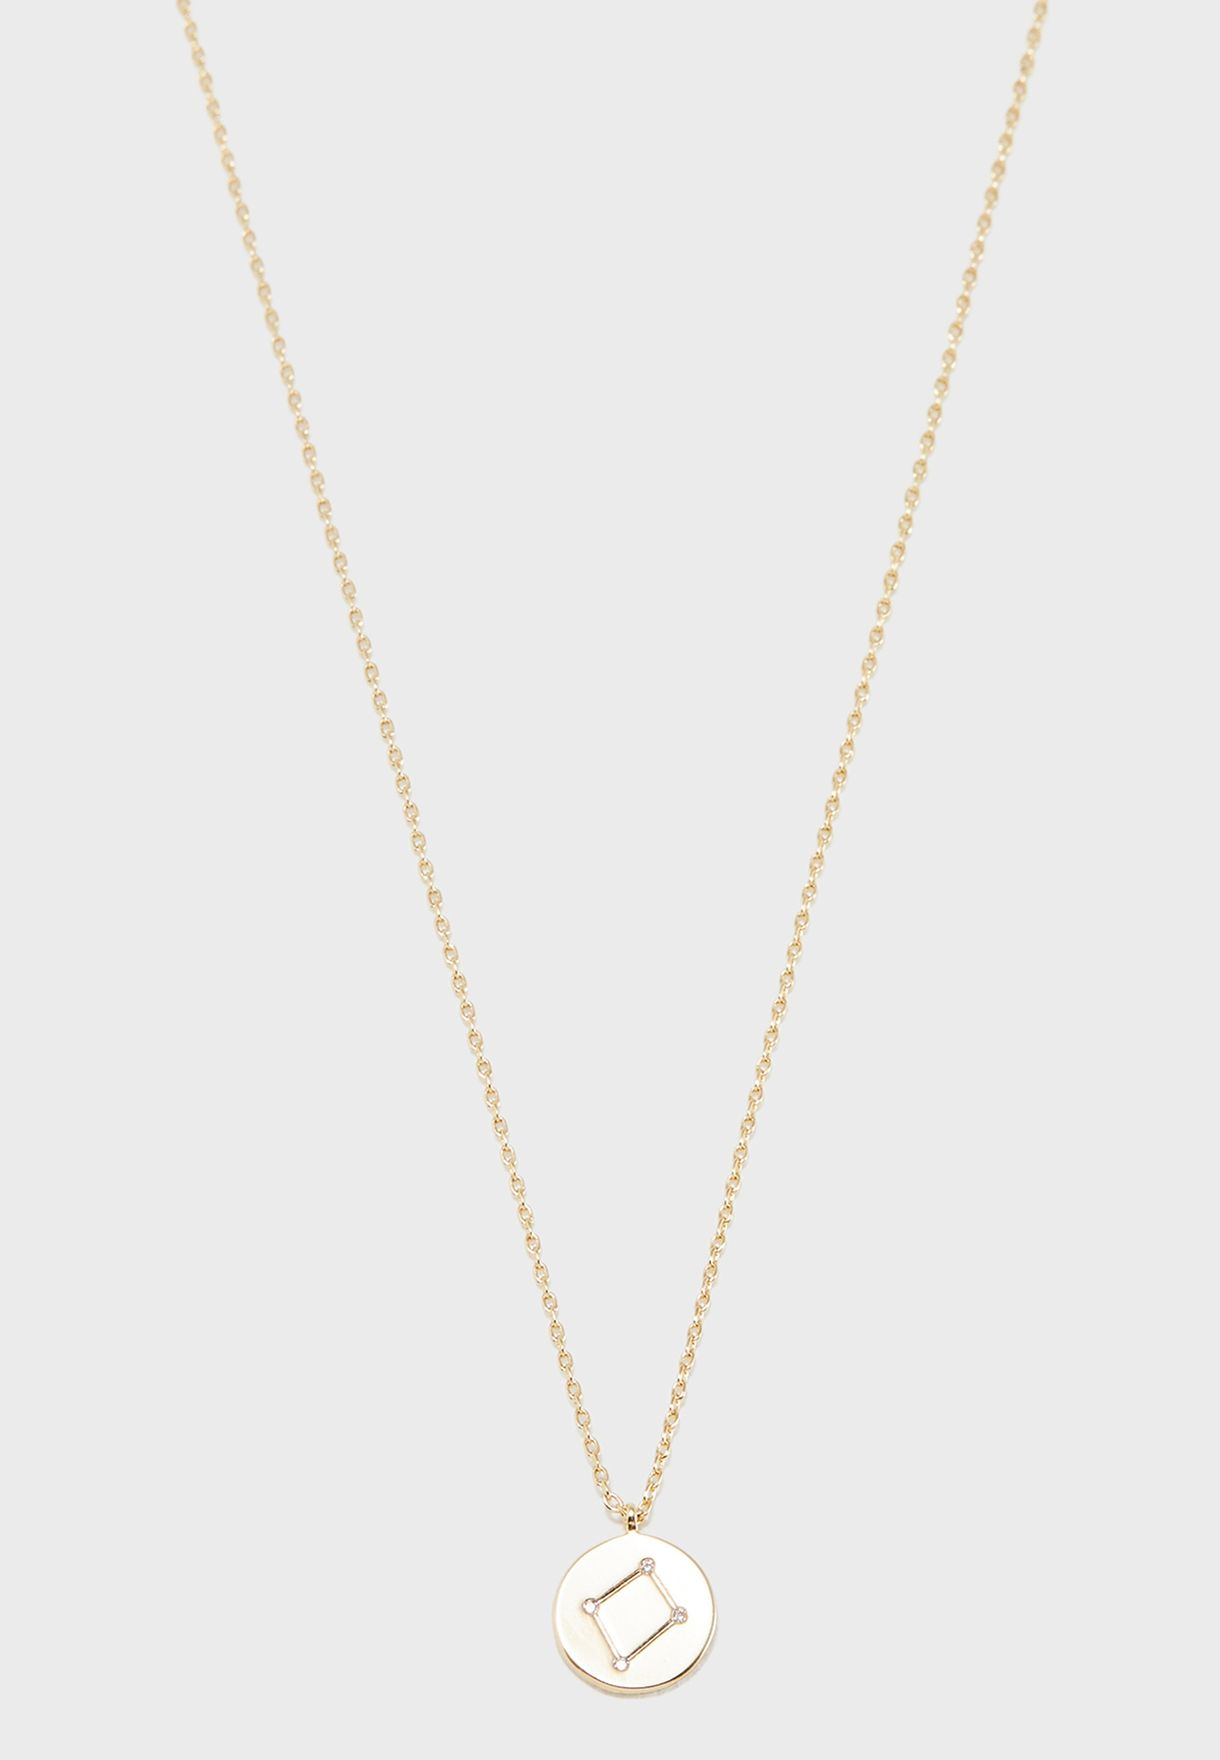 Gift Envelope Libra Constellation Necklace